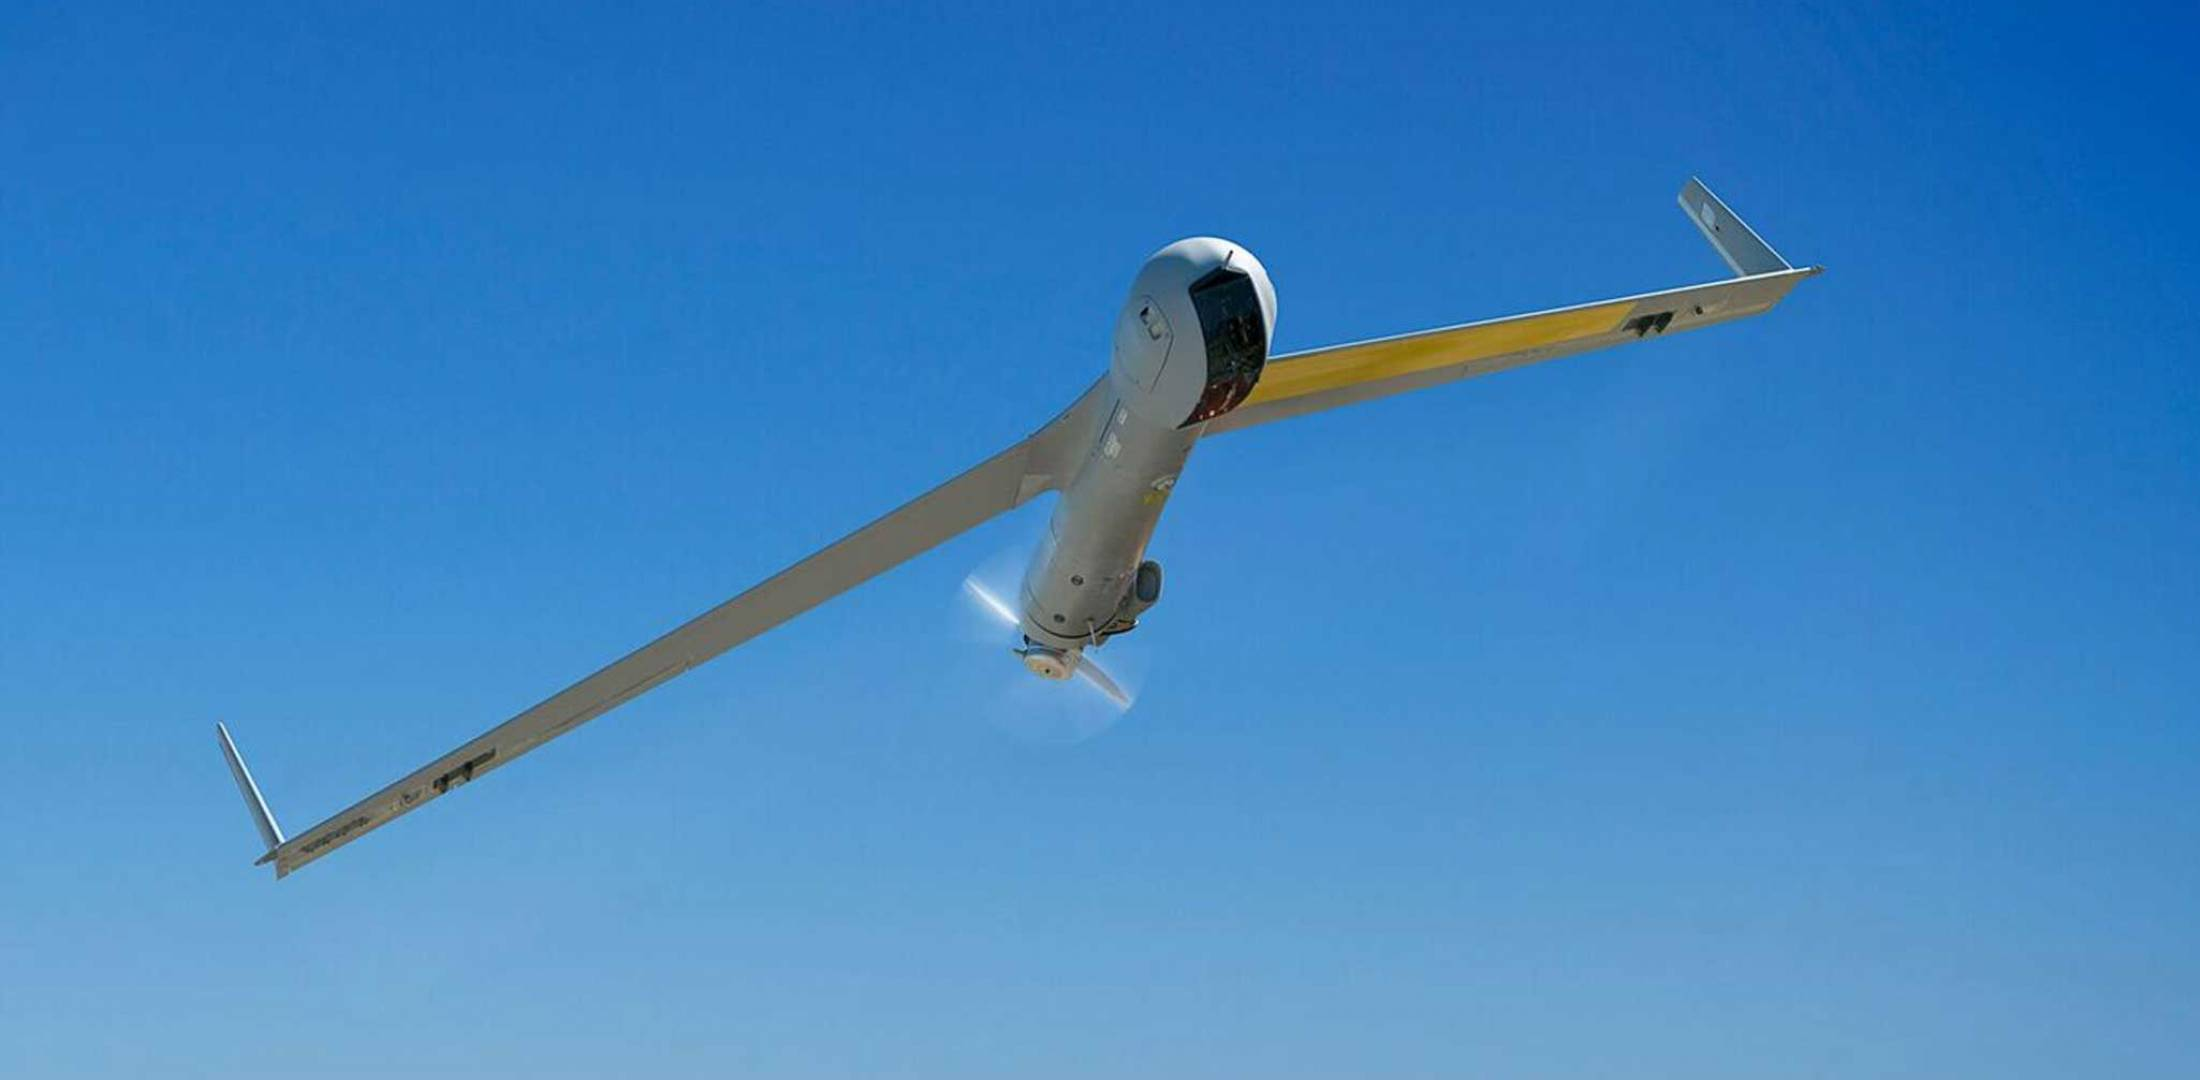 ScanEagle UAS Offers New Capabilities | Defense News